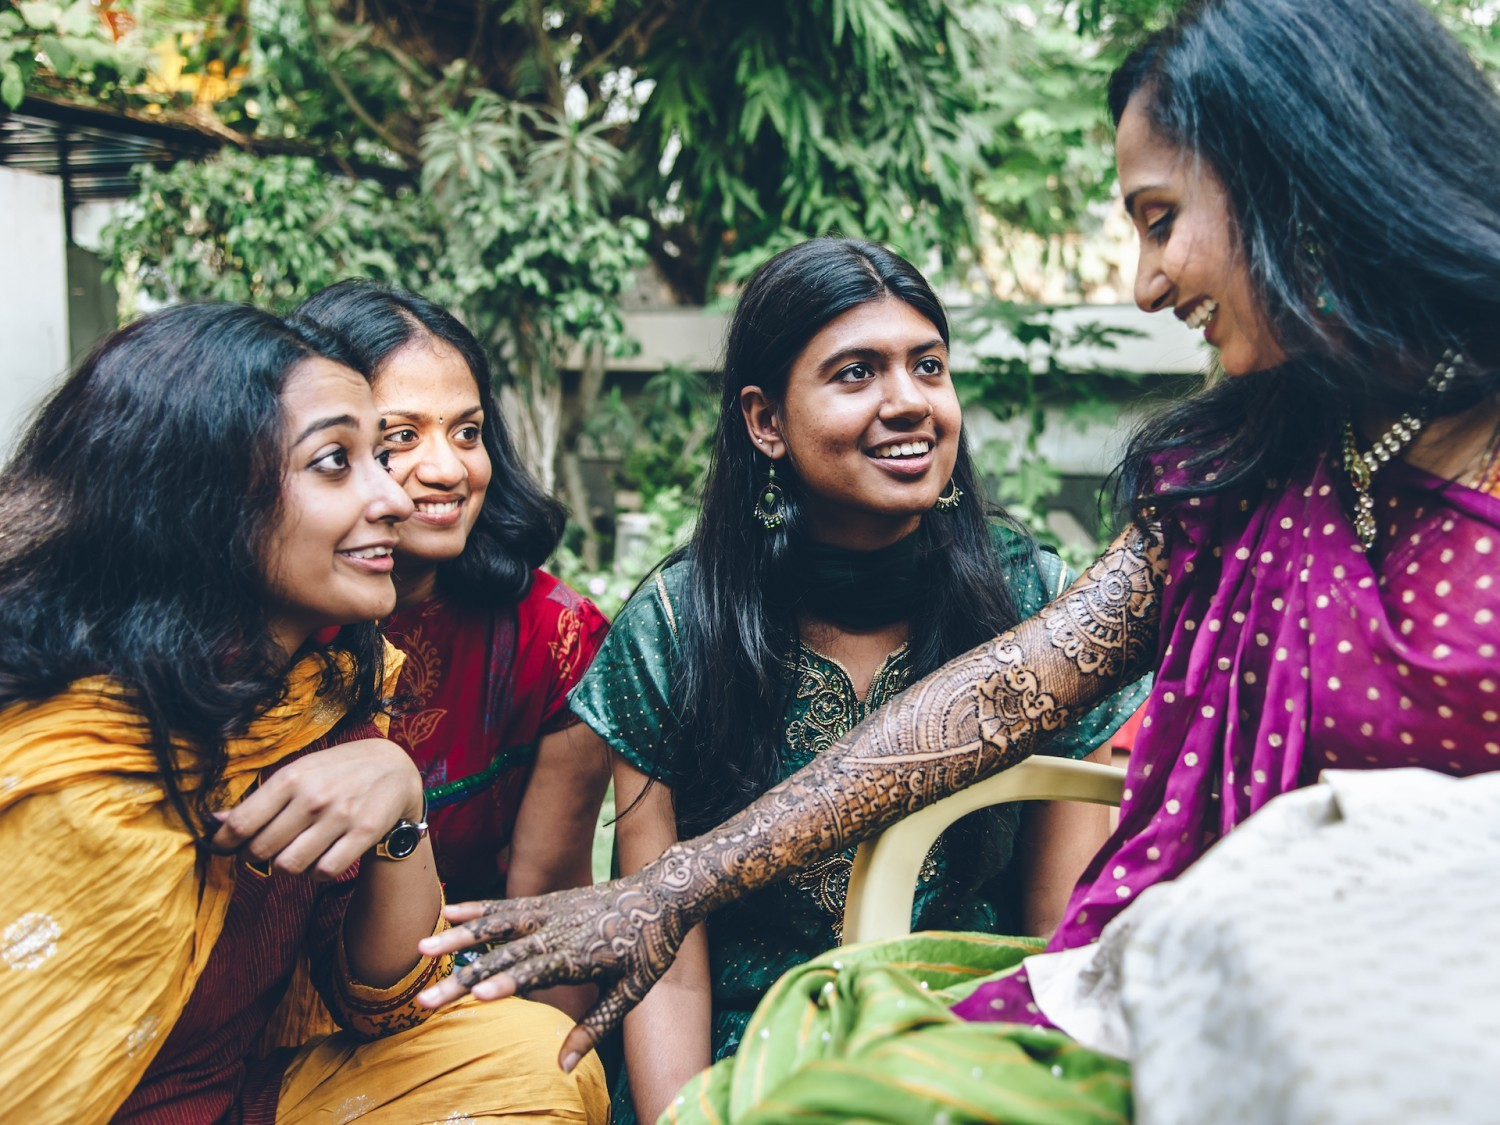 hindu single women in crossroads The problem and status of women in hinduism and how they are treated in modern hindu society.